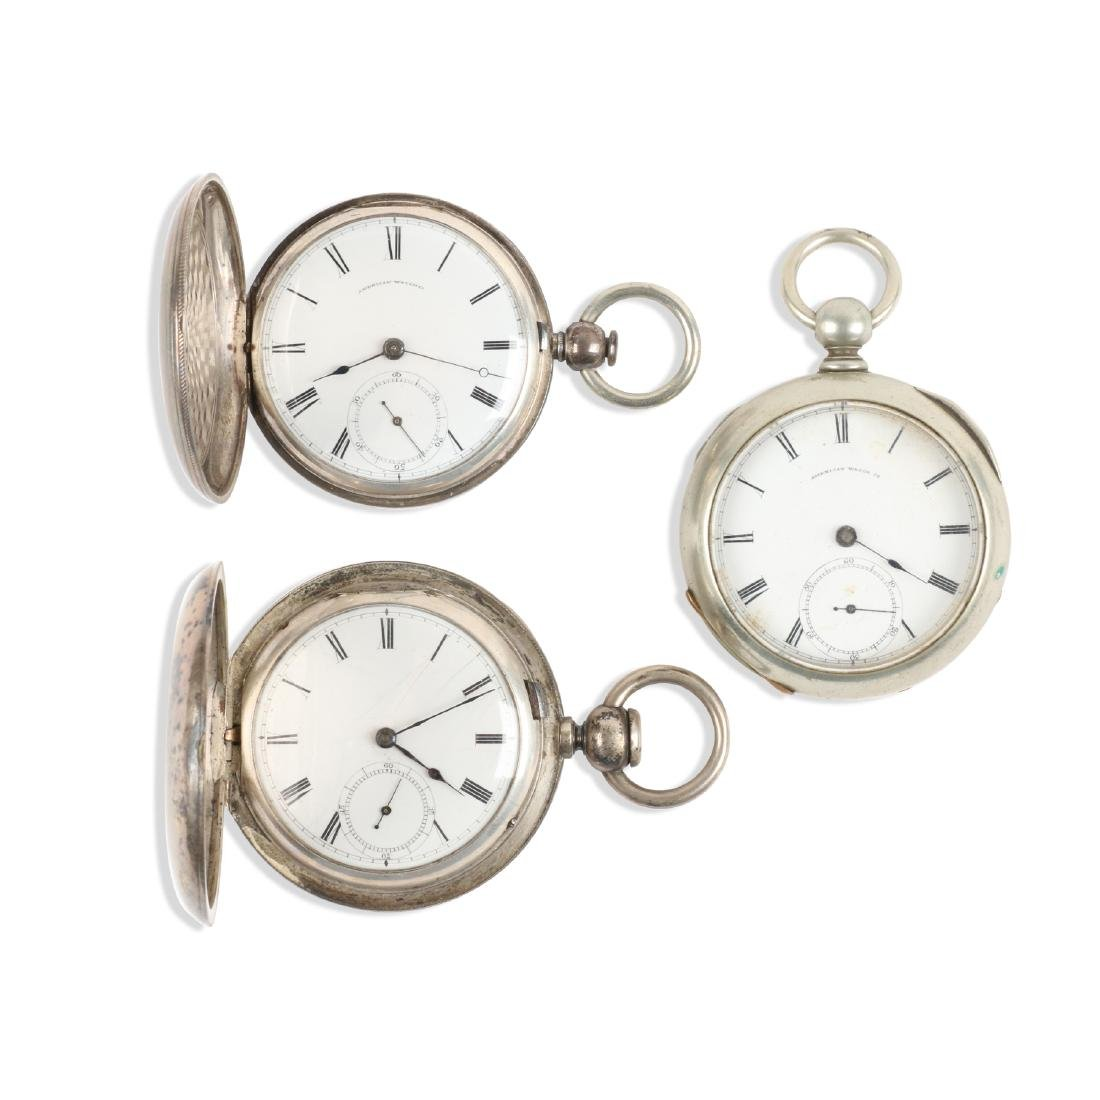 Early, American Key Wind Pocket Watches